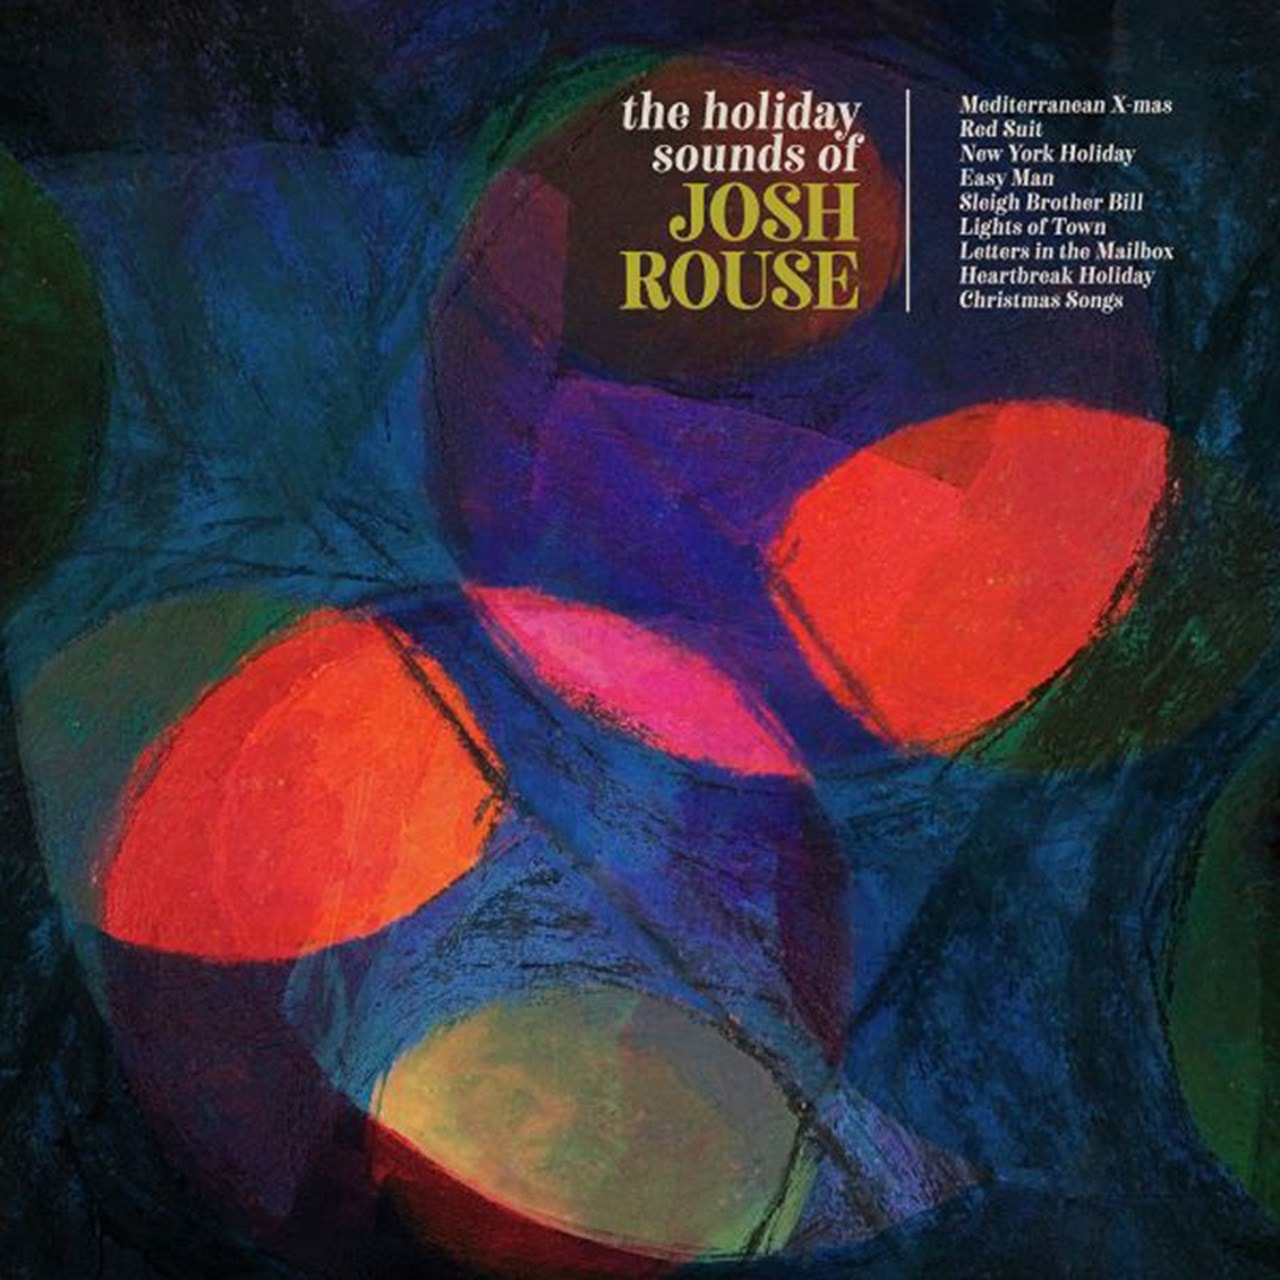 The Holiday Sounds of Josh Rouse - 1